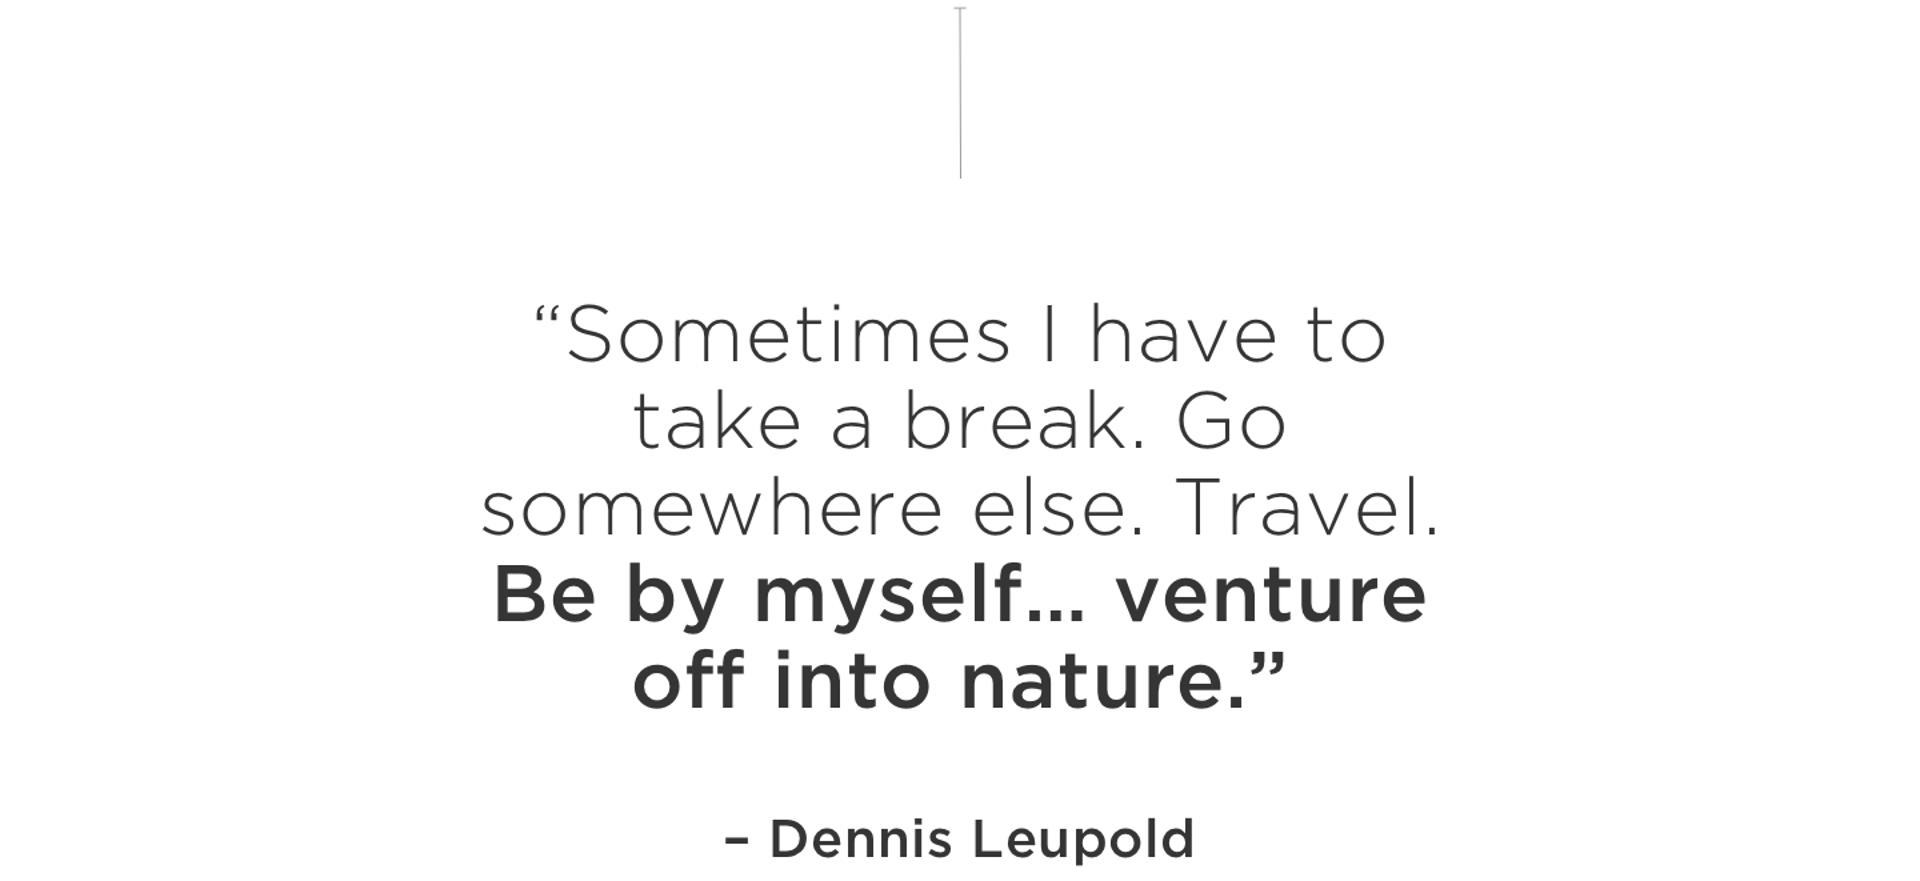 """""""Sometimes I have to take a break. Go somewhere else. Travel. Be by myself… venture off into nature."""" - Dennis Leupold"""